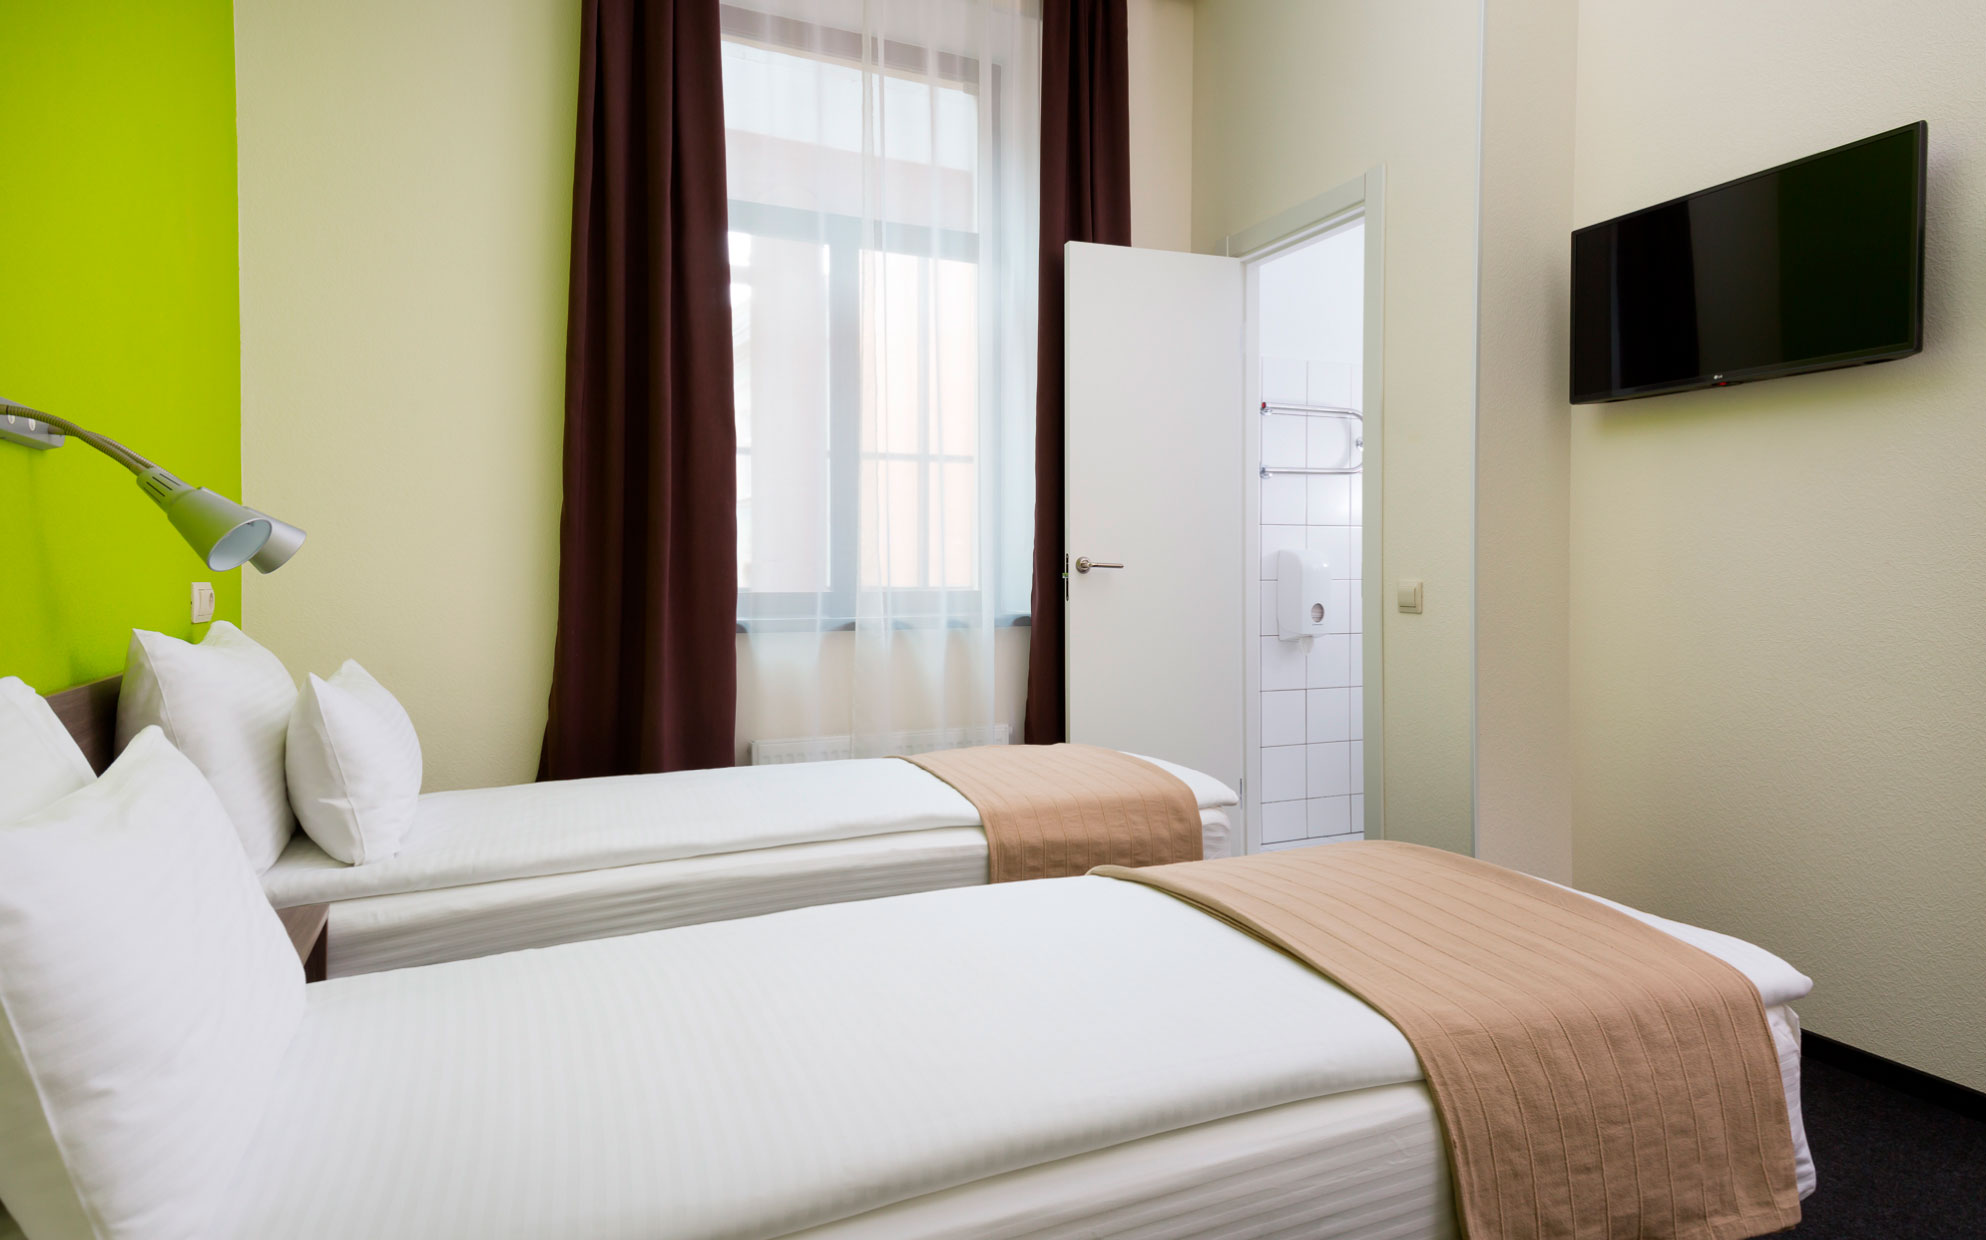 Station Hotel L1 In St Petersburg Russia Official Site